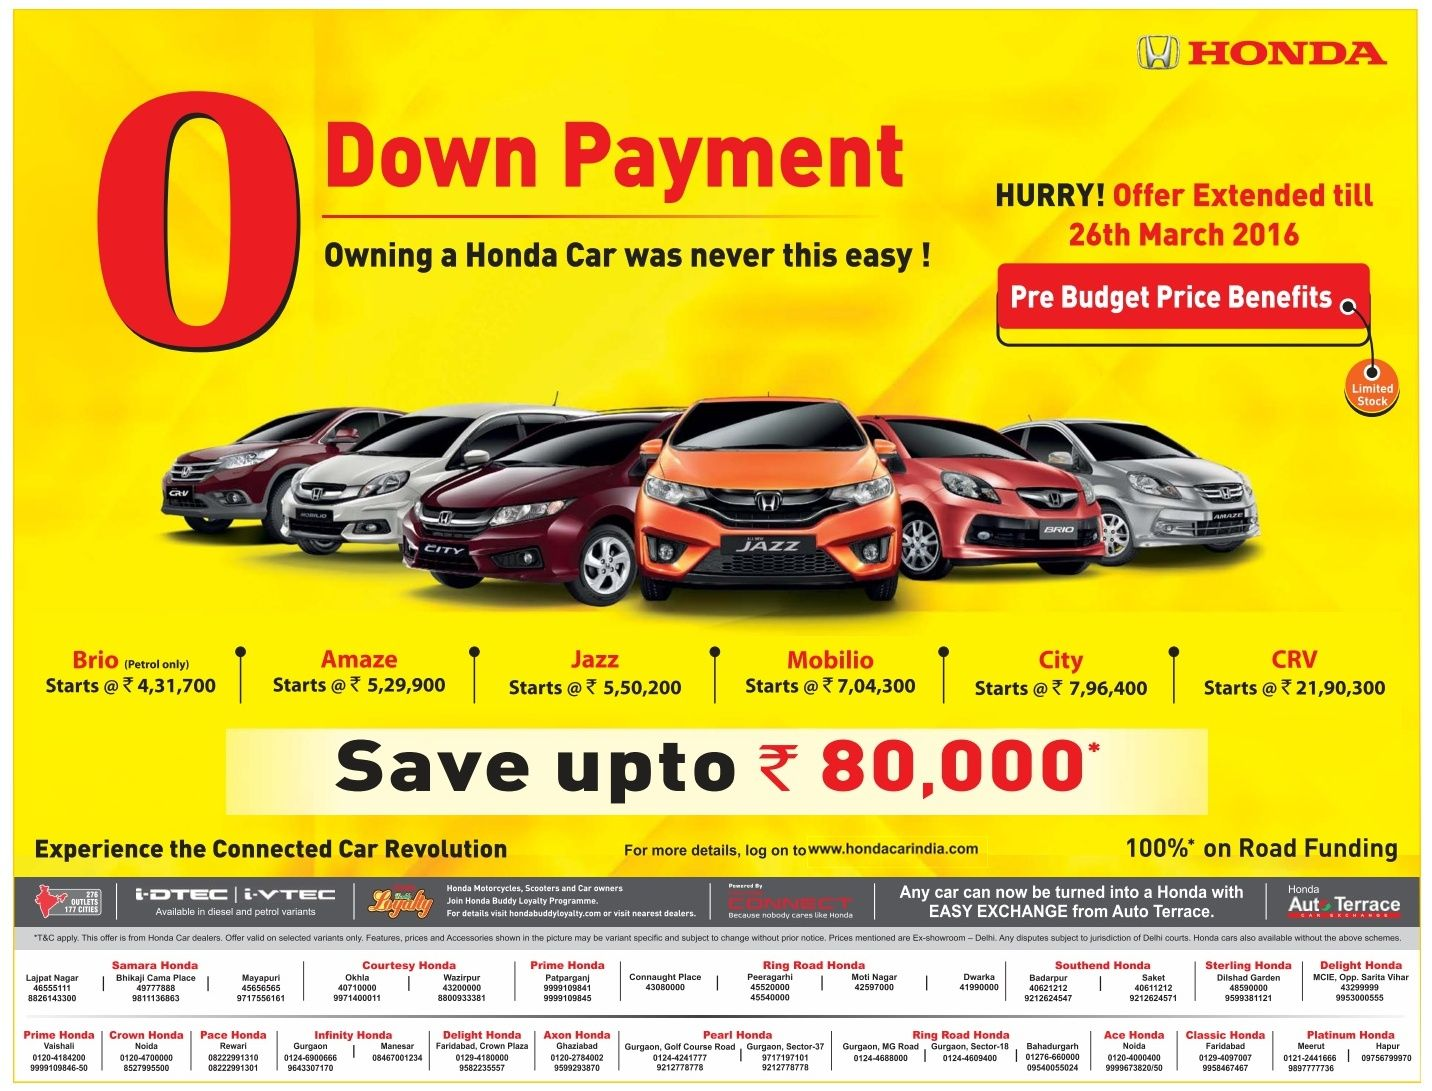 0 Down Car >> Never Before Offer On Honda Cars Zero Down Payment On